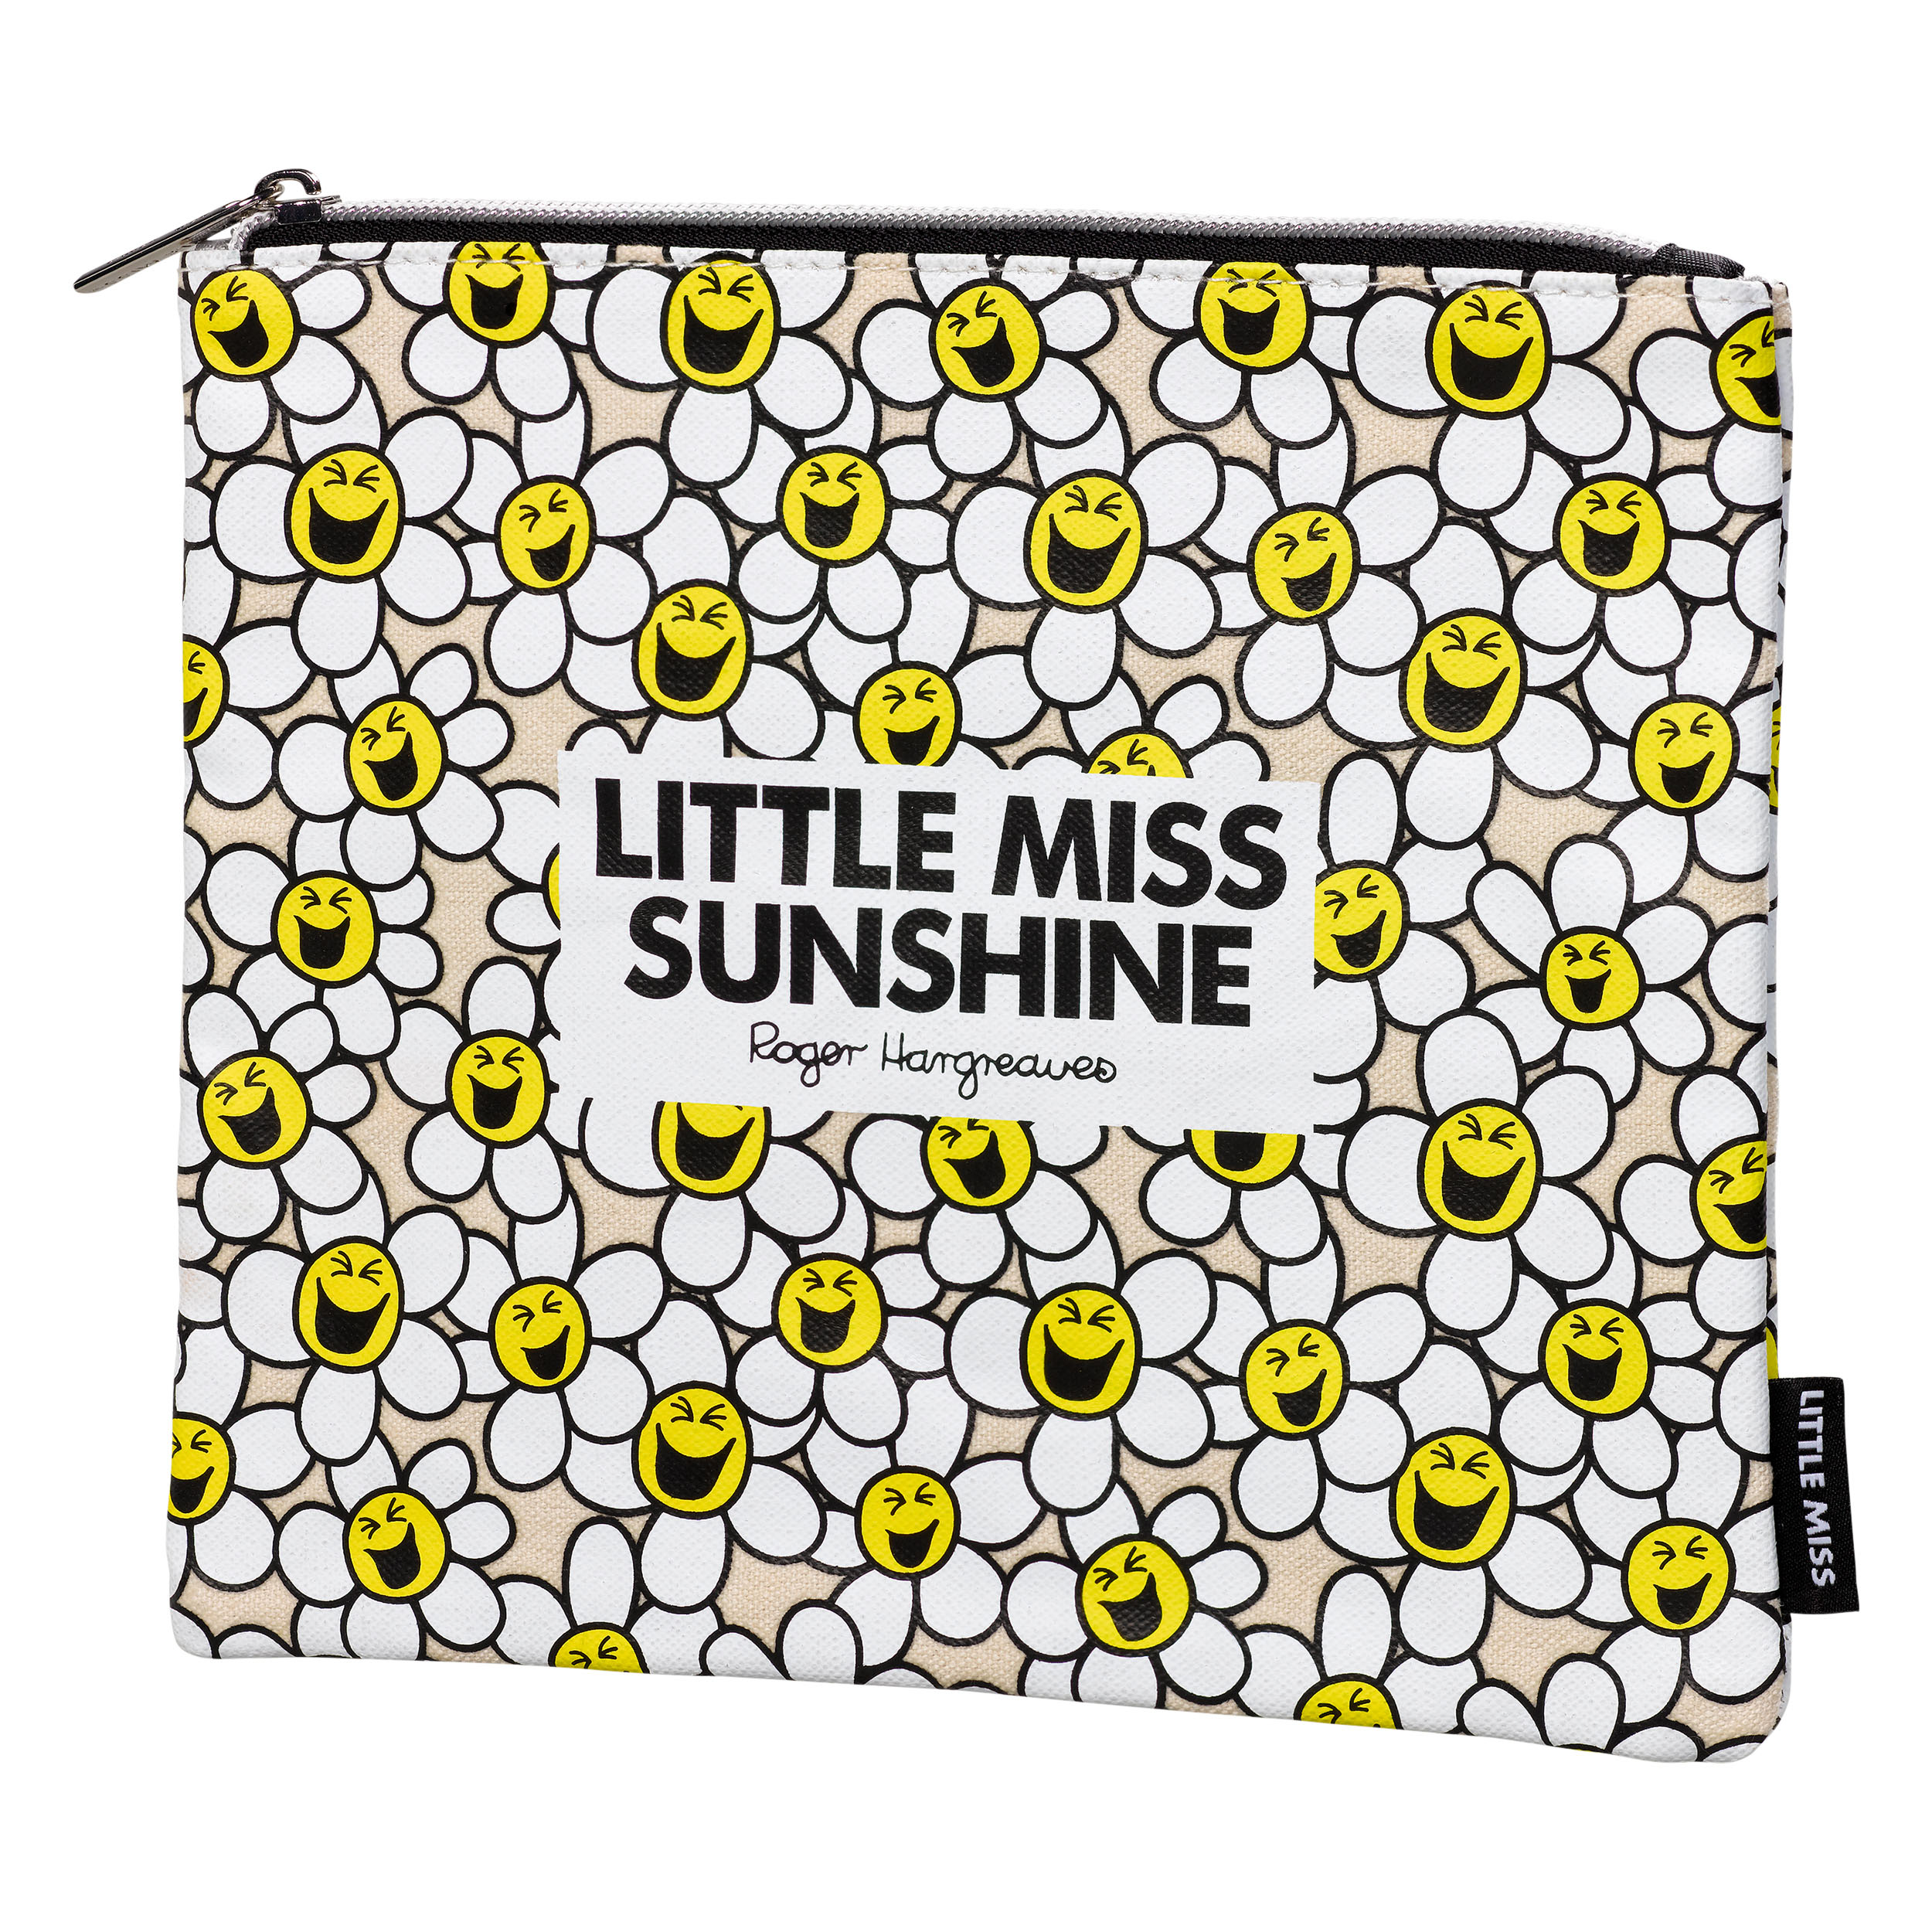 Laughing Daisies' Pouch